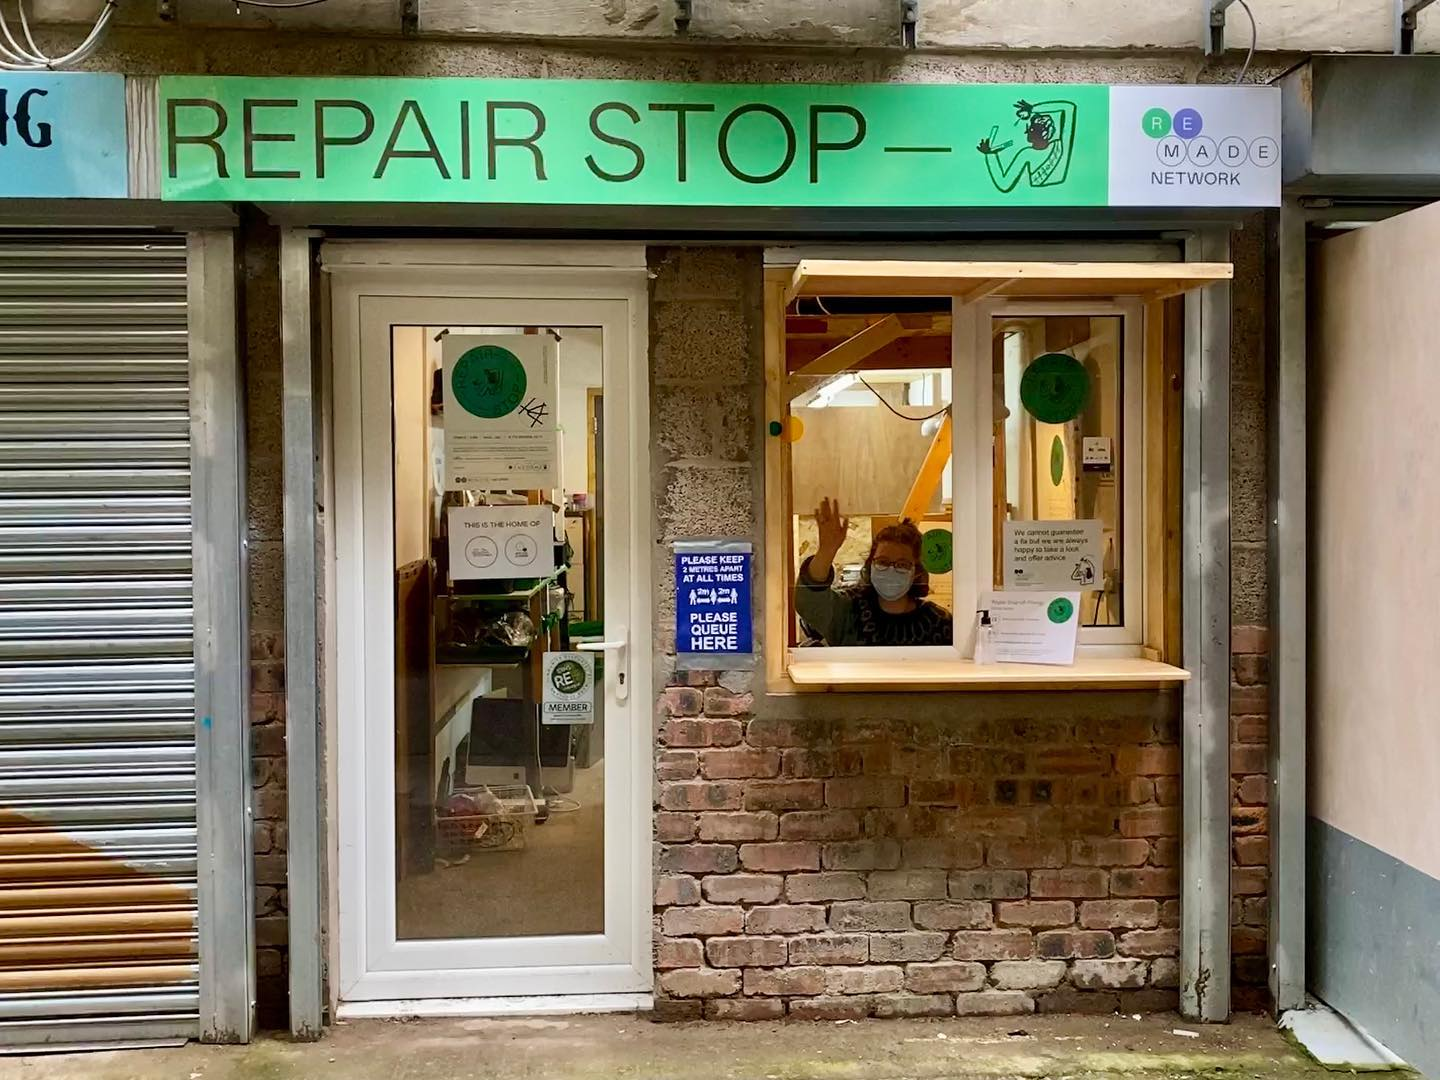 Finally made it to the Repair Stop